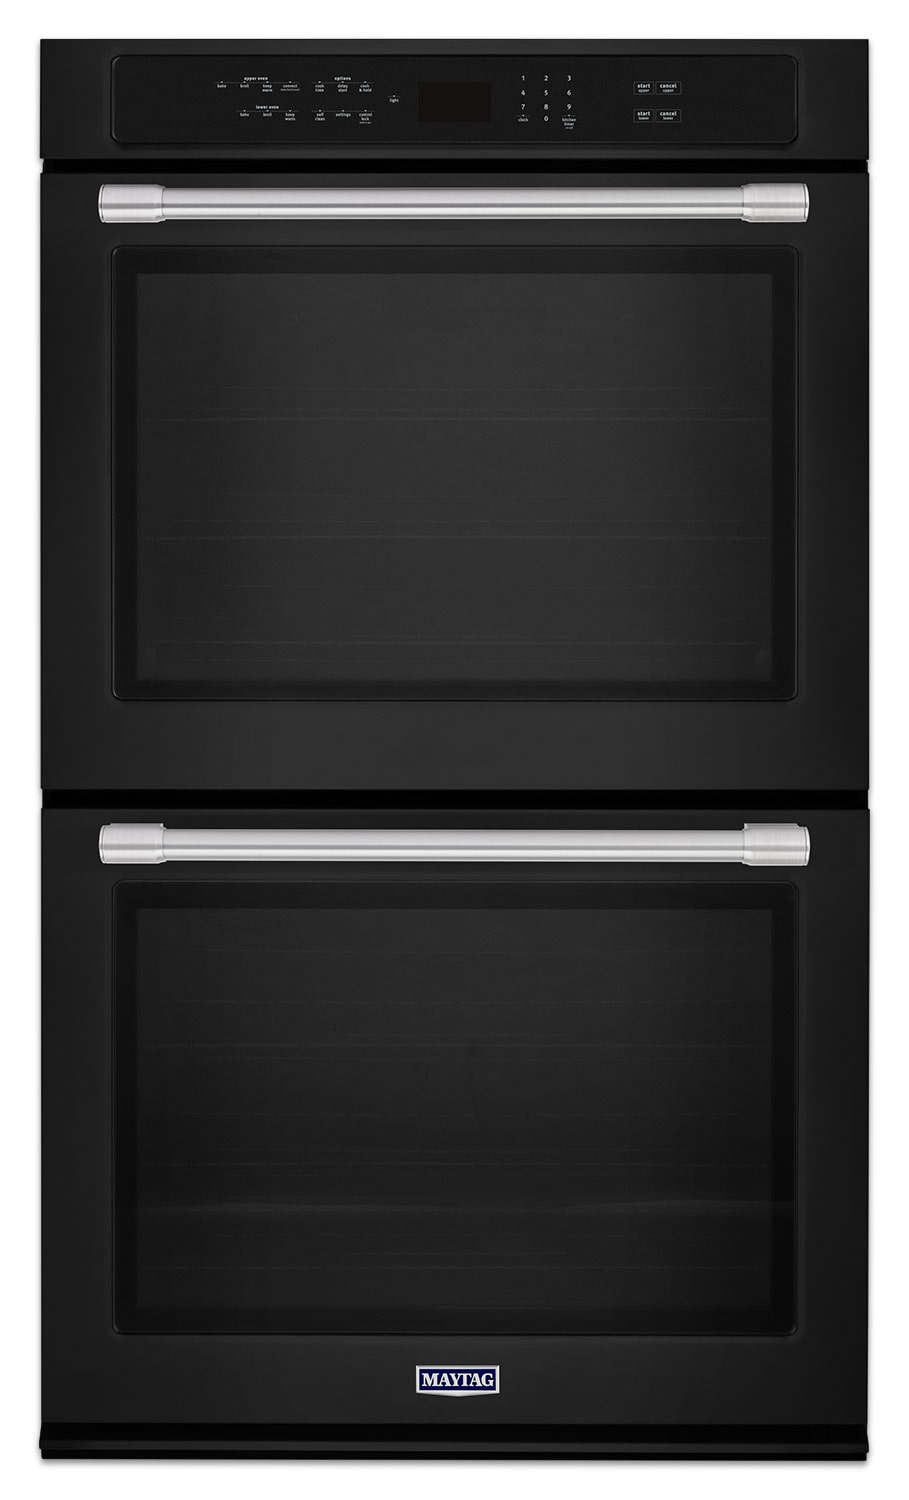 kitchen aid tv offer ceiling lights maytag black electric double wall oven (10.0 cu. ft ...